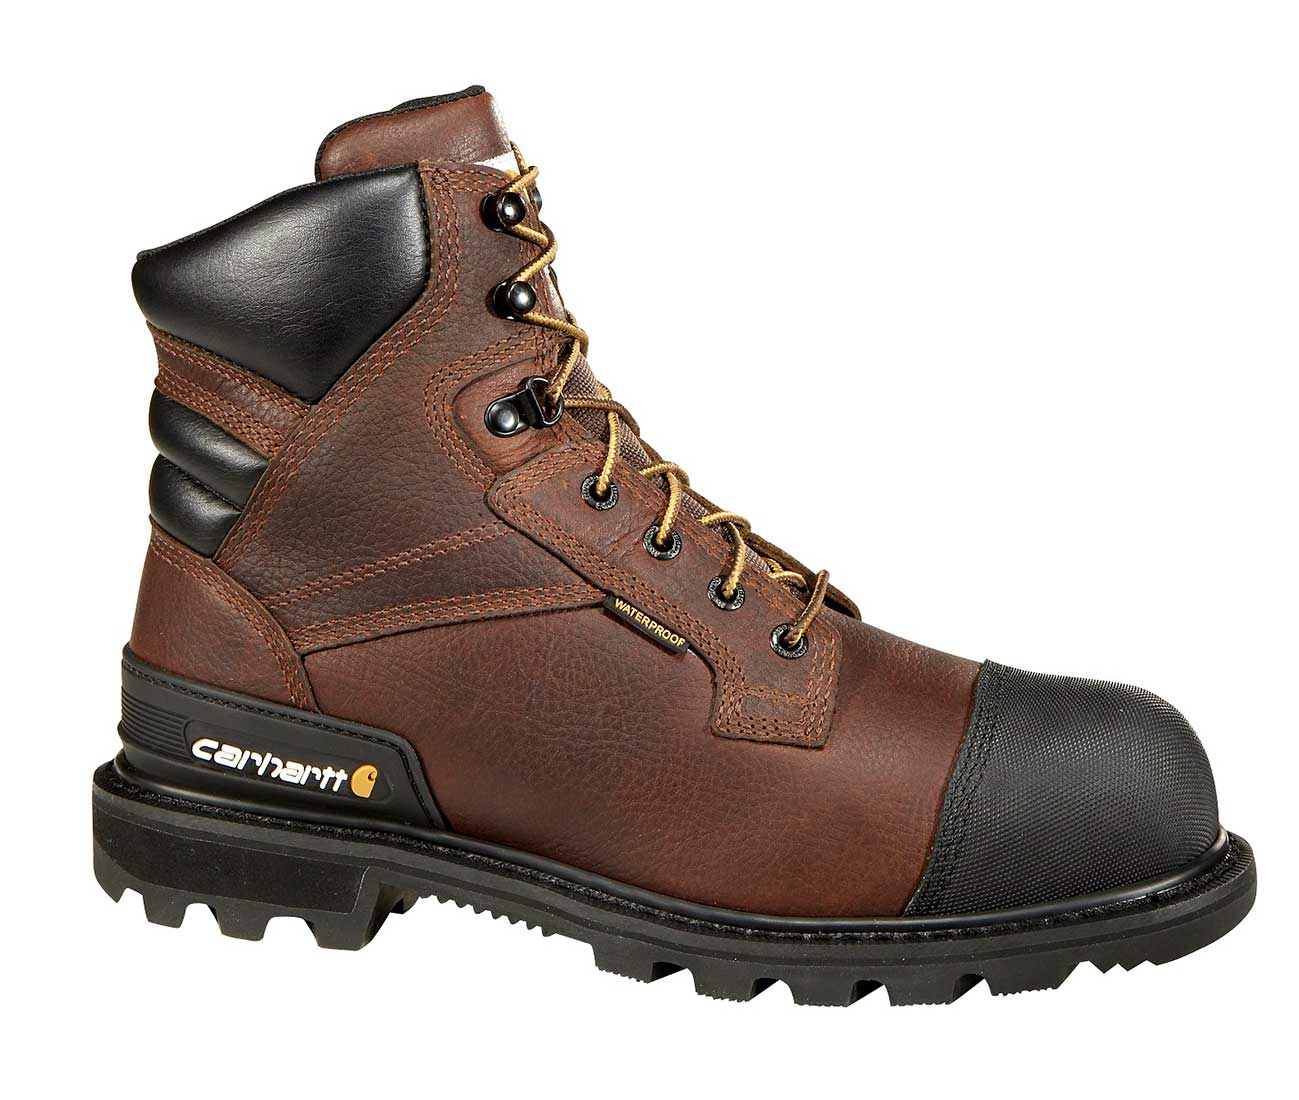 Carhartt - CMR6859 - Puncture Resistant Men s Brown Leather Waterproof Insulated  Steel Safety Toe 6-inch Work Boot d270a0653b14